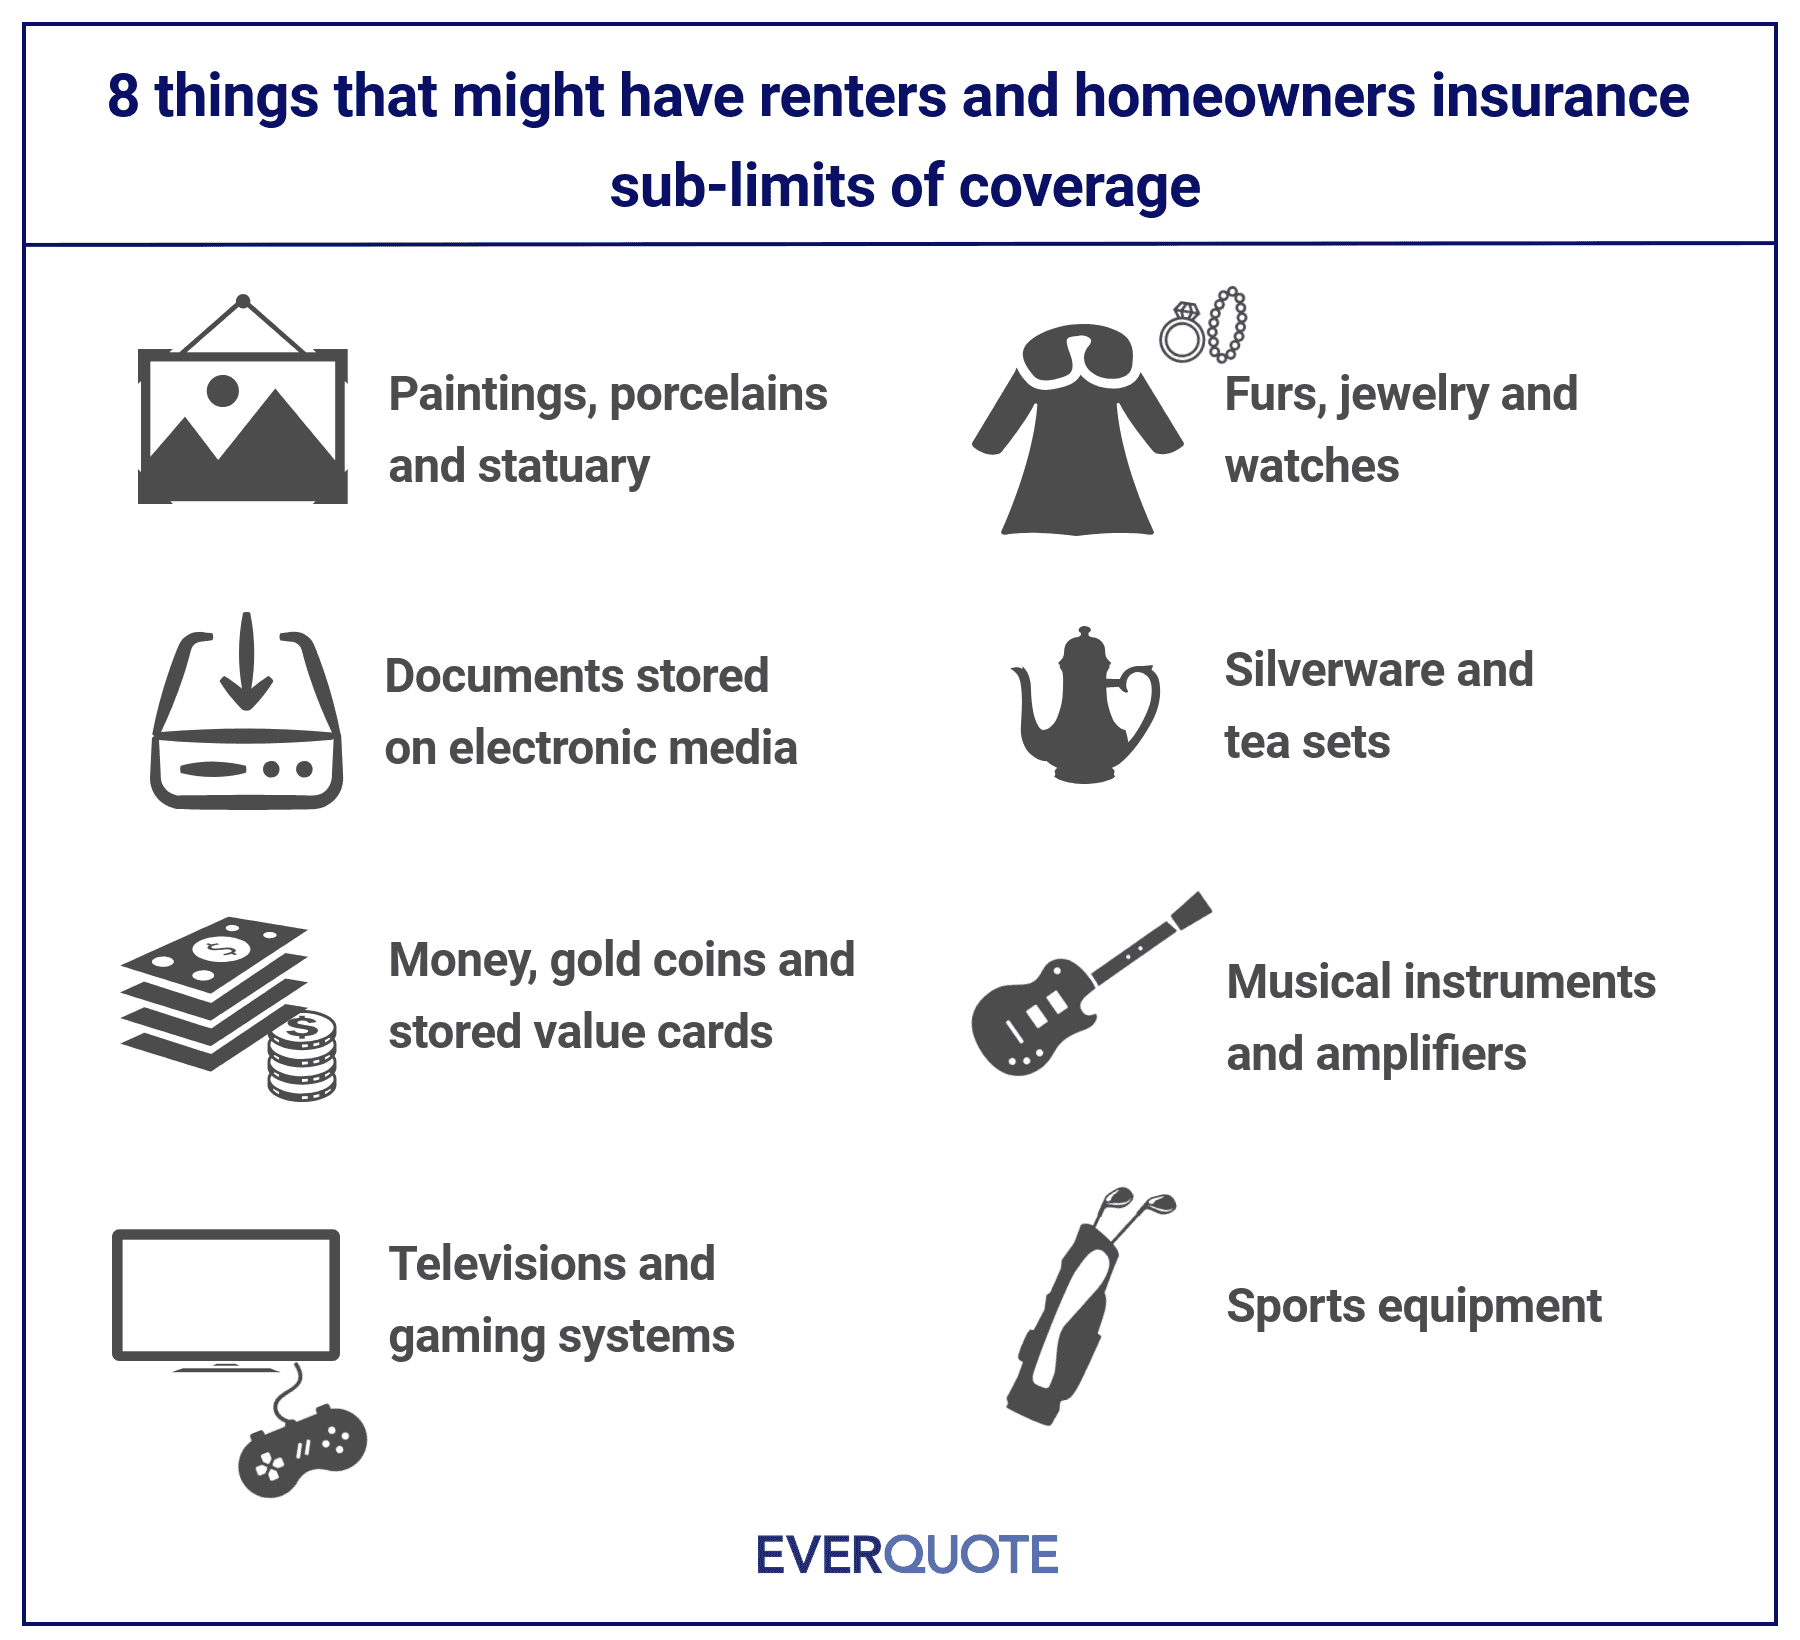 Renters insurance sublimits